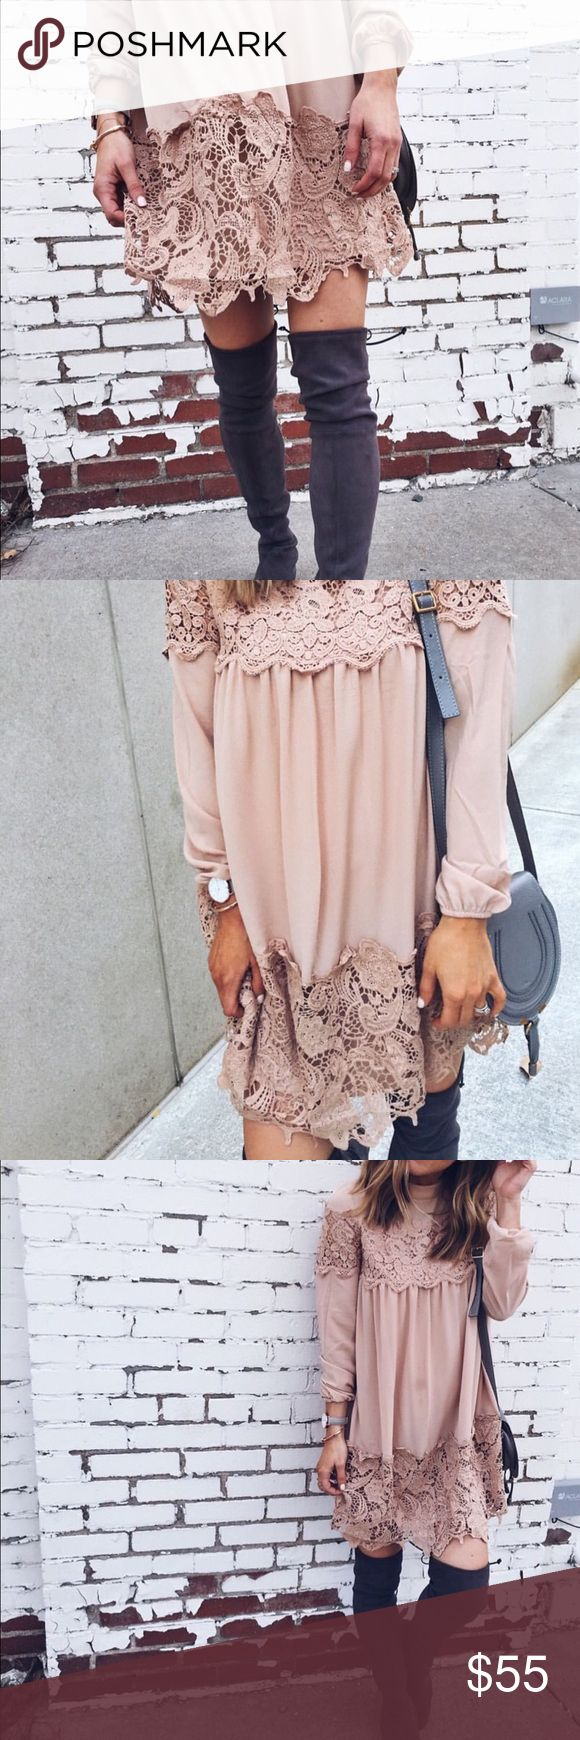 ASOS size 4 nude peach lace dress blogger favorite Stunning New with tags nude/peach lace dress style that is trending right now. Favorited by cella Jane blog and other fashion bloggers! Perfect for all seasons! ASOS/Fashion Union Dresses Long Sleeve